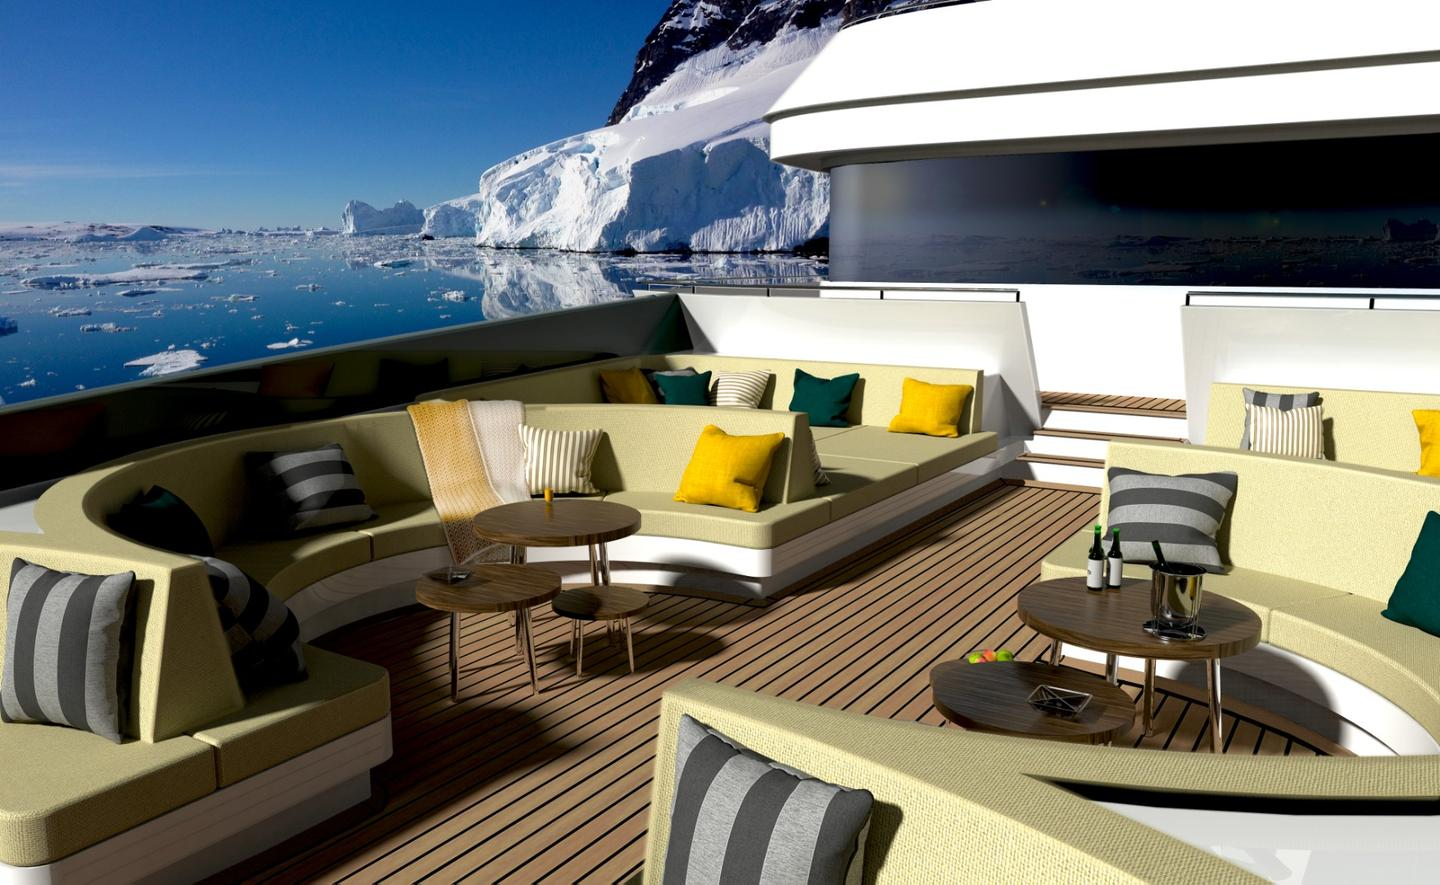 The forward deck is designed for luxury outdoor relaxing with sofas and lounge beds positioned to take in the best forward views on-board the yacht